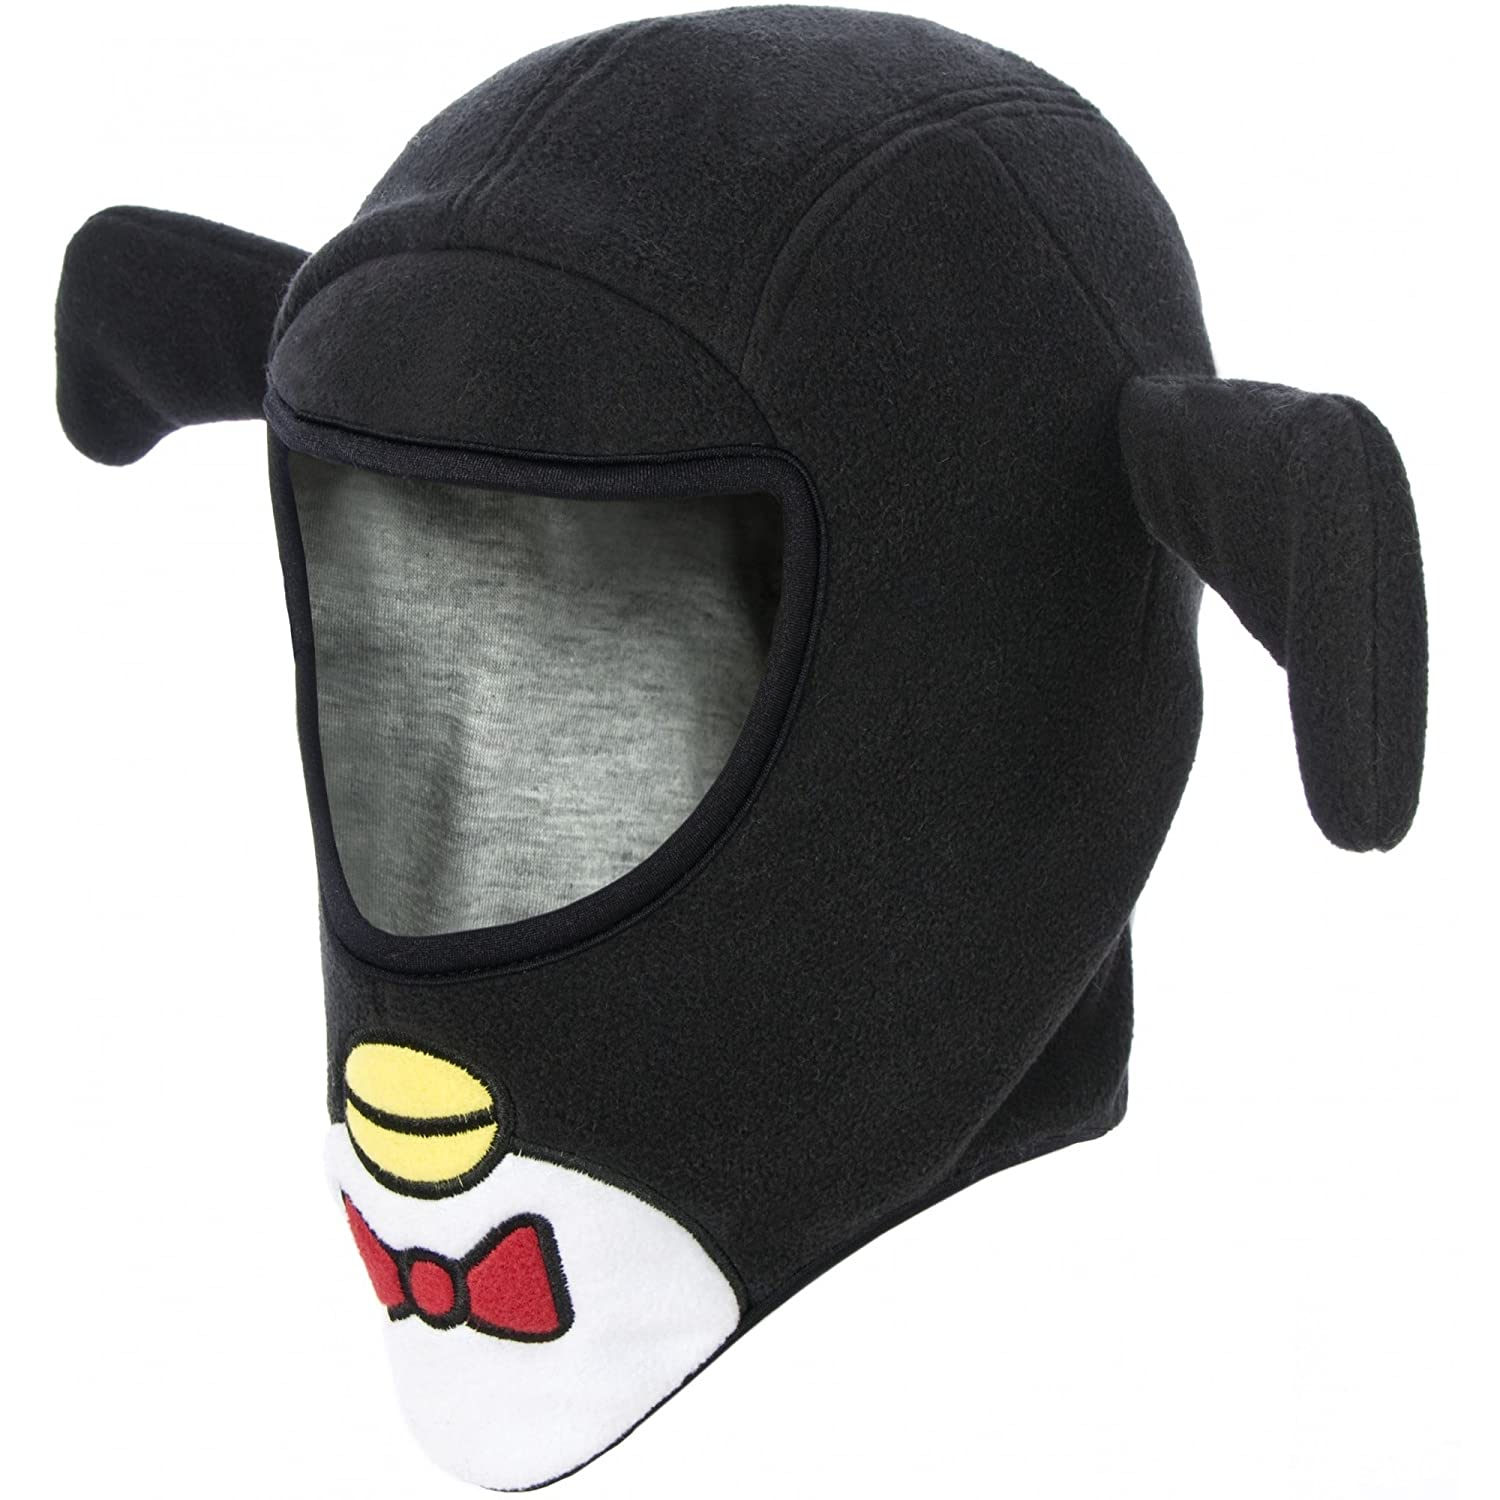 Trespass Childrens/Kids Pengu Novelty Balaclava (2/4 Years) (Black) UTTP2832_2